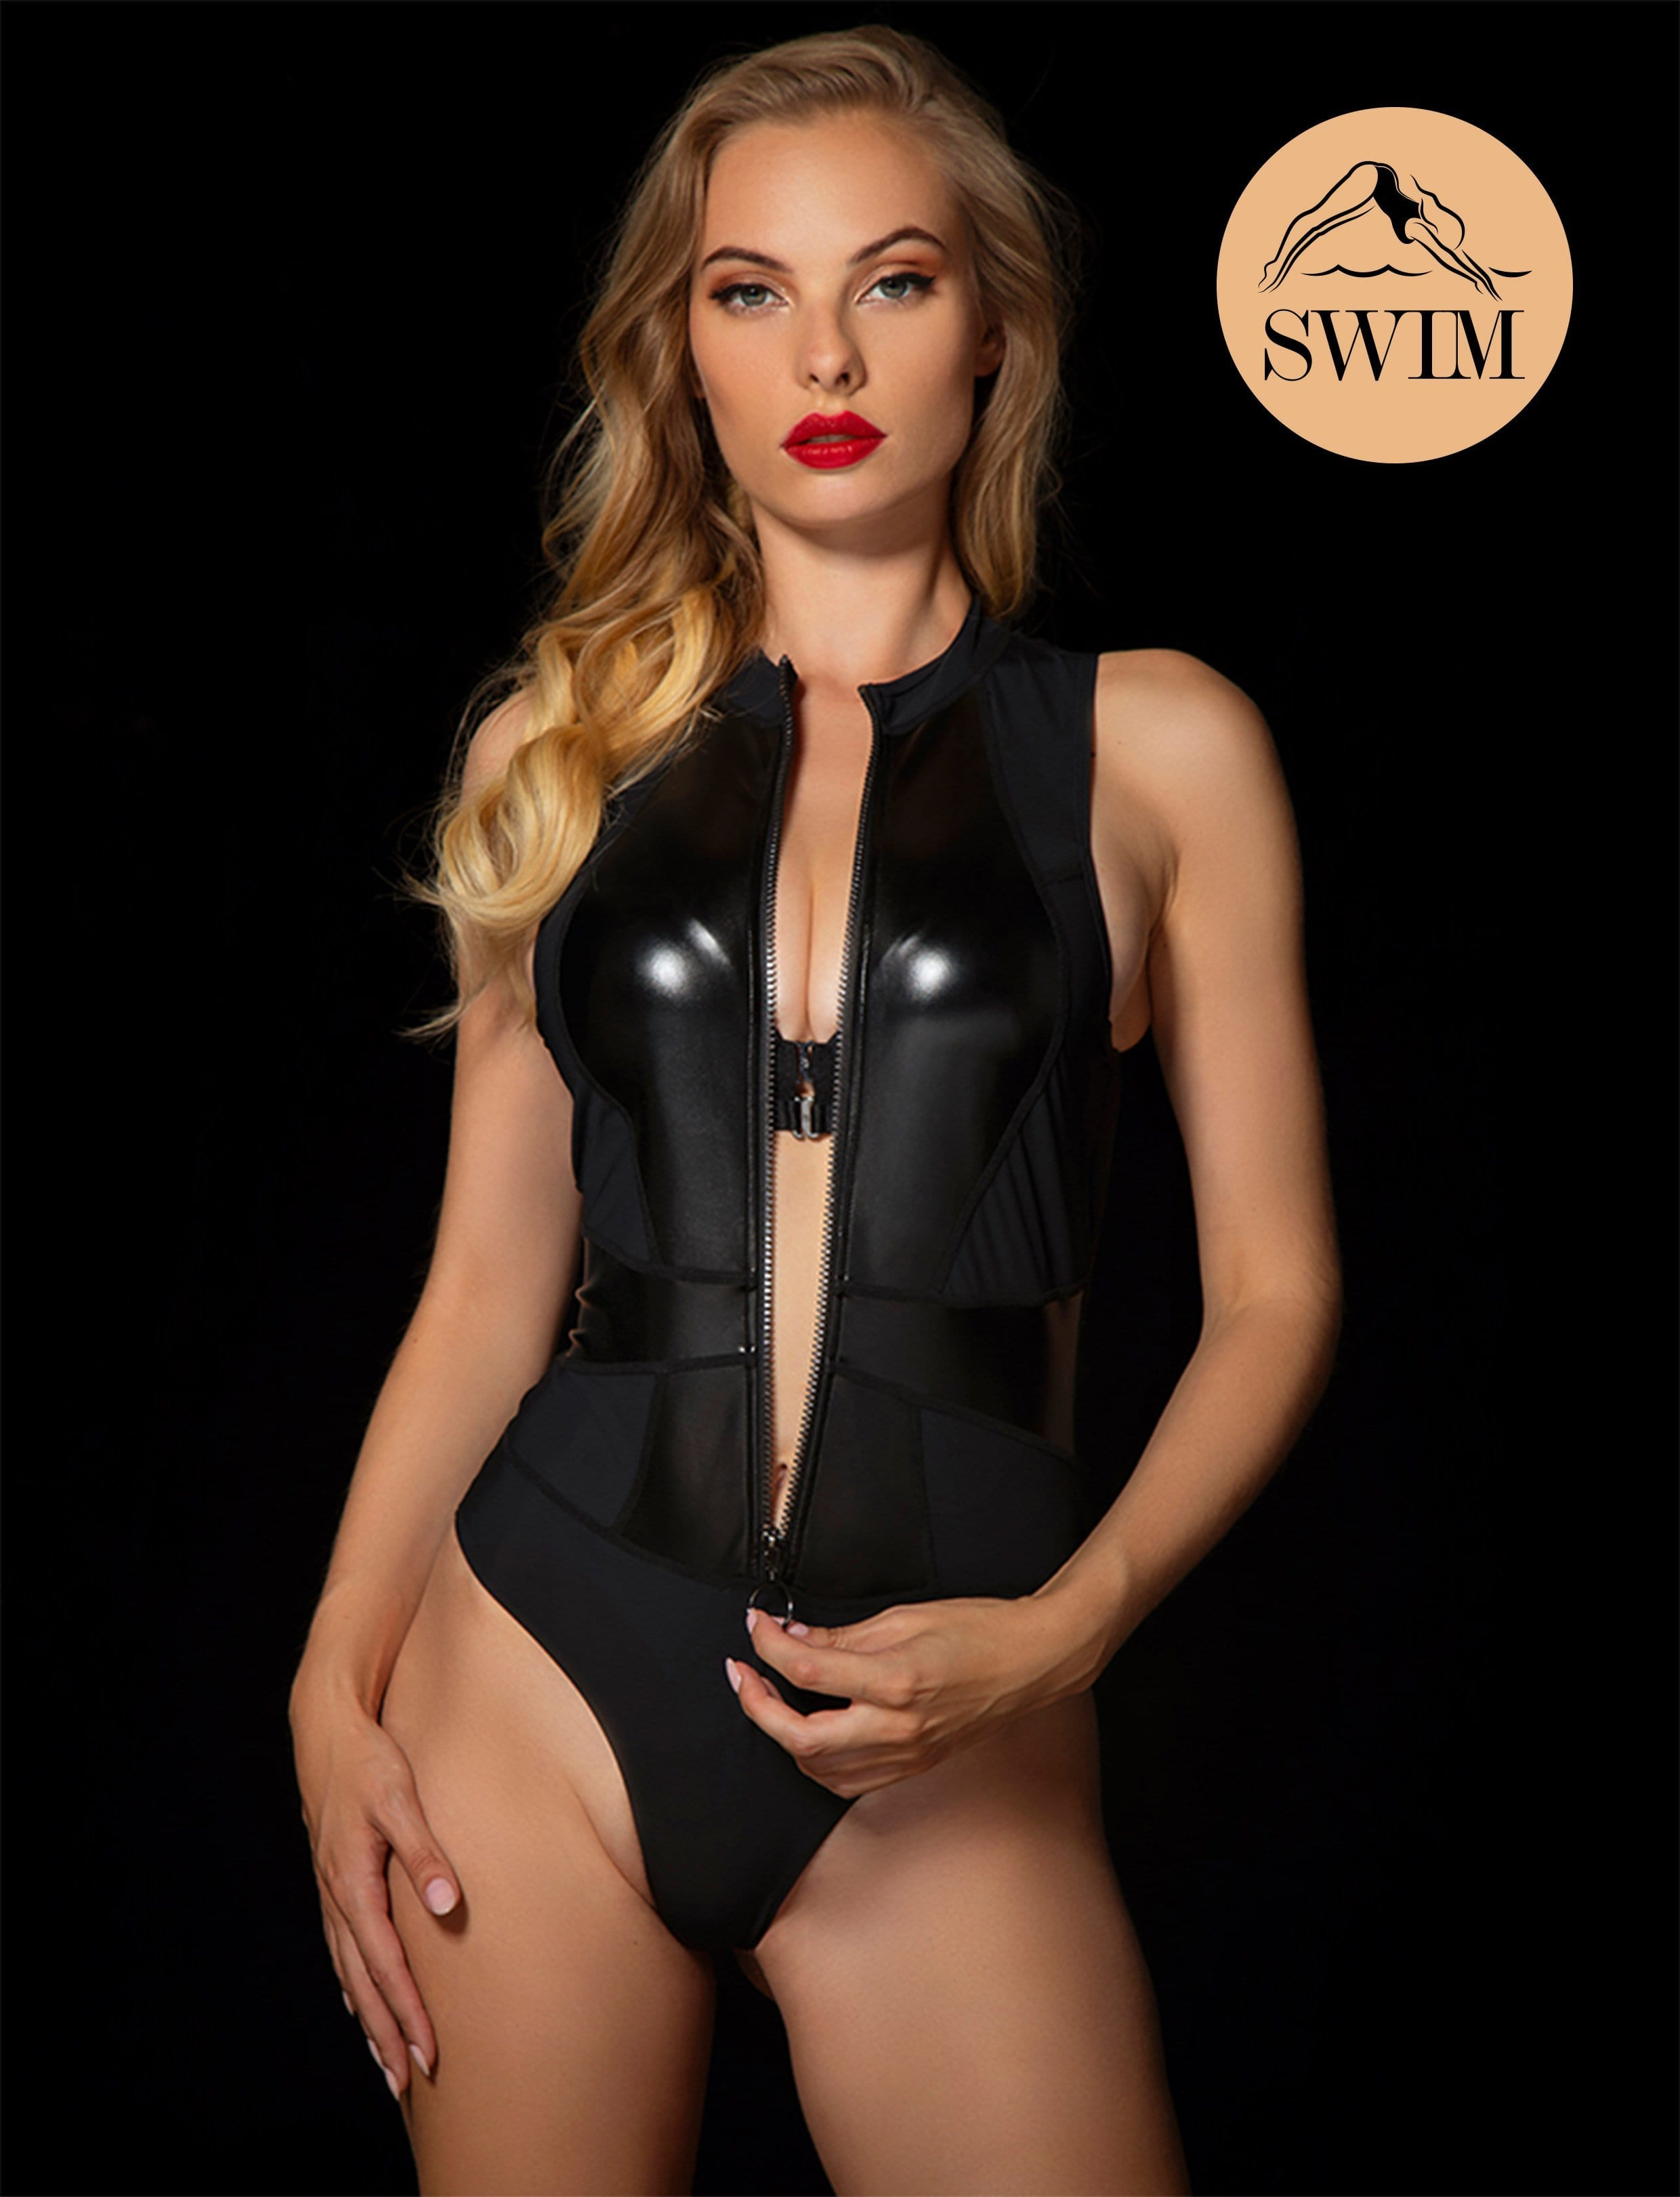 Honey Ryder Swimsuit - Shop Swimwear | Honey Birdette